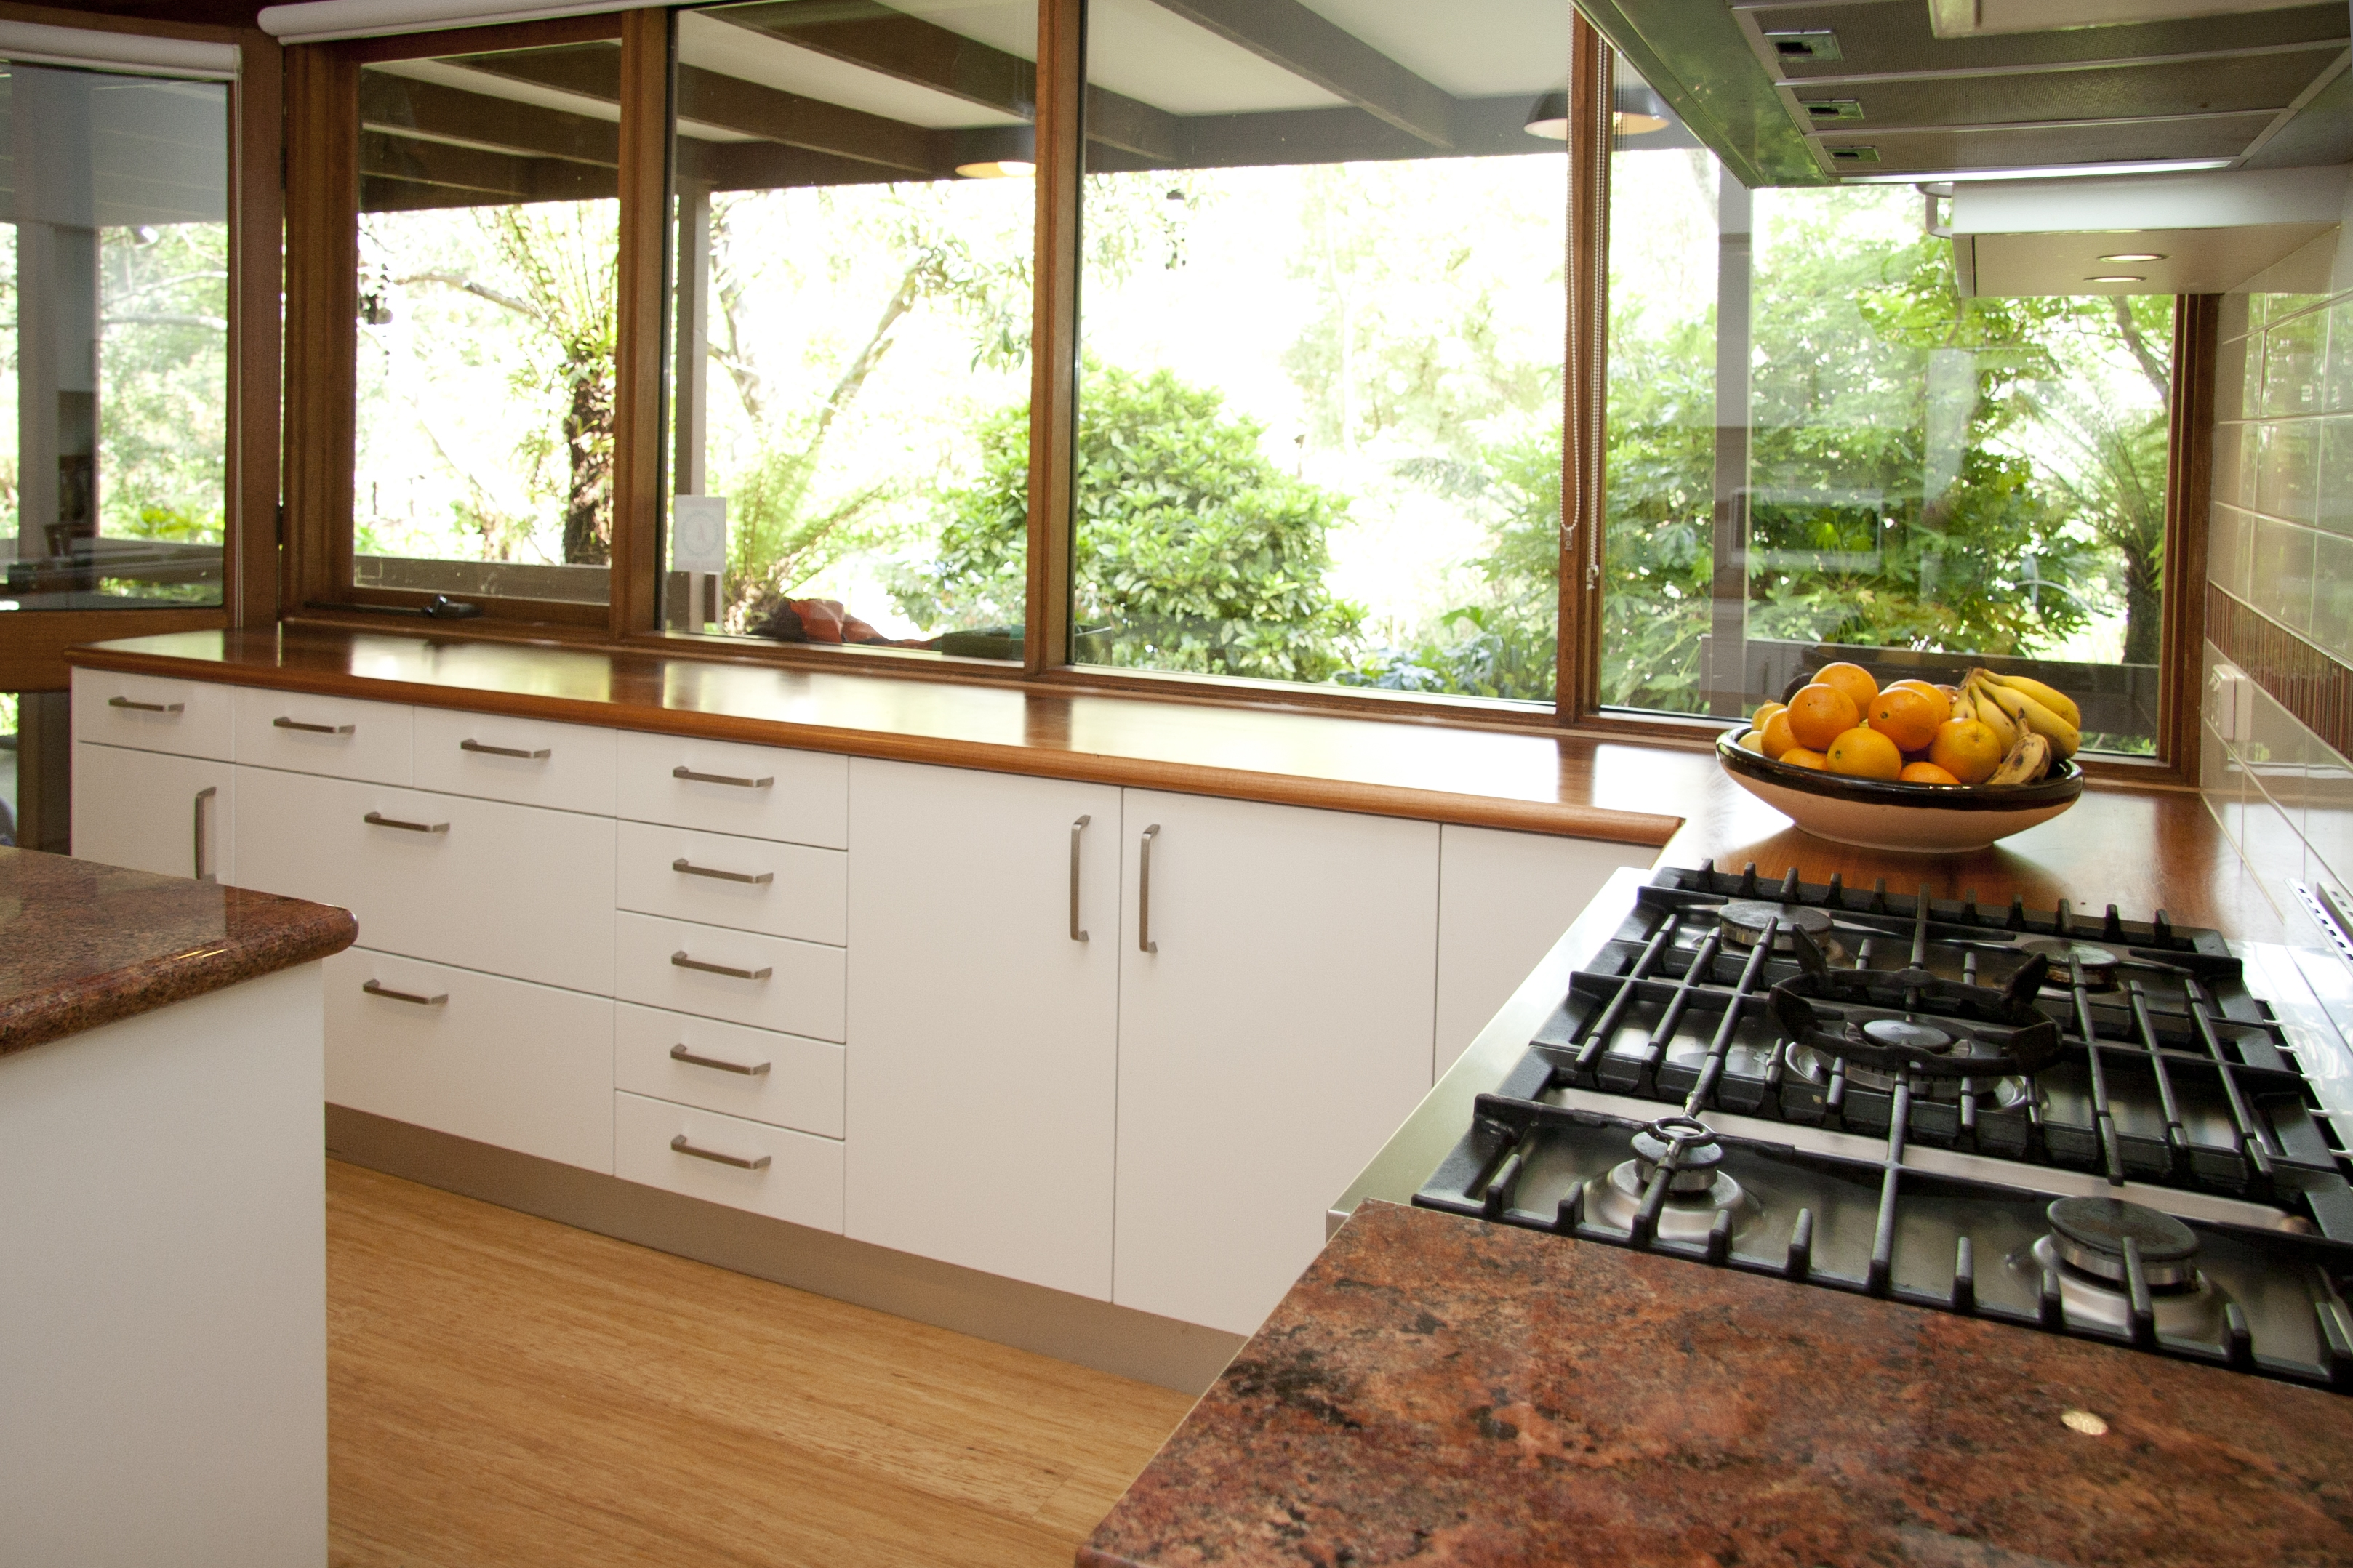 Woodcraft Cabinets Kitchens Pty Ltdwoodcraft cabinets bespoke cabinetry melbourne